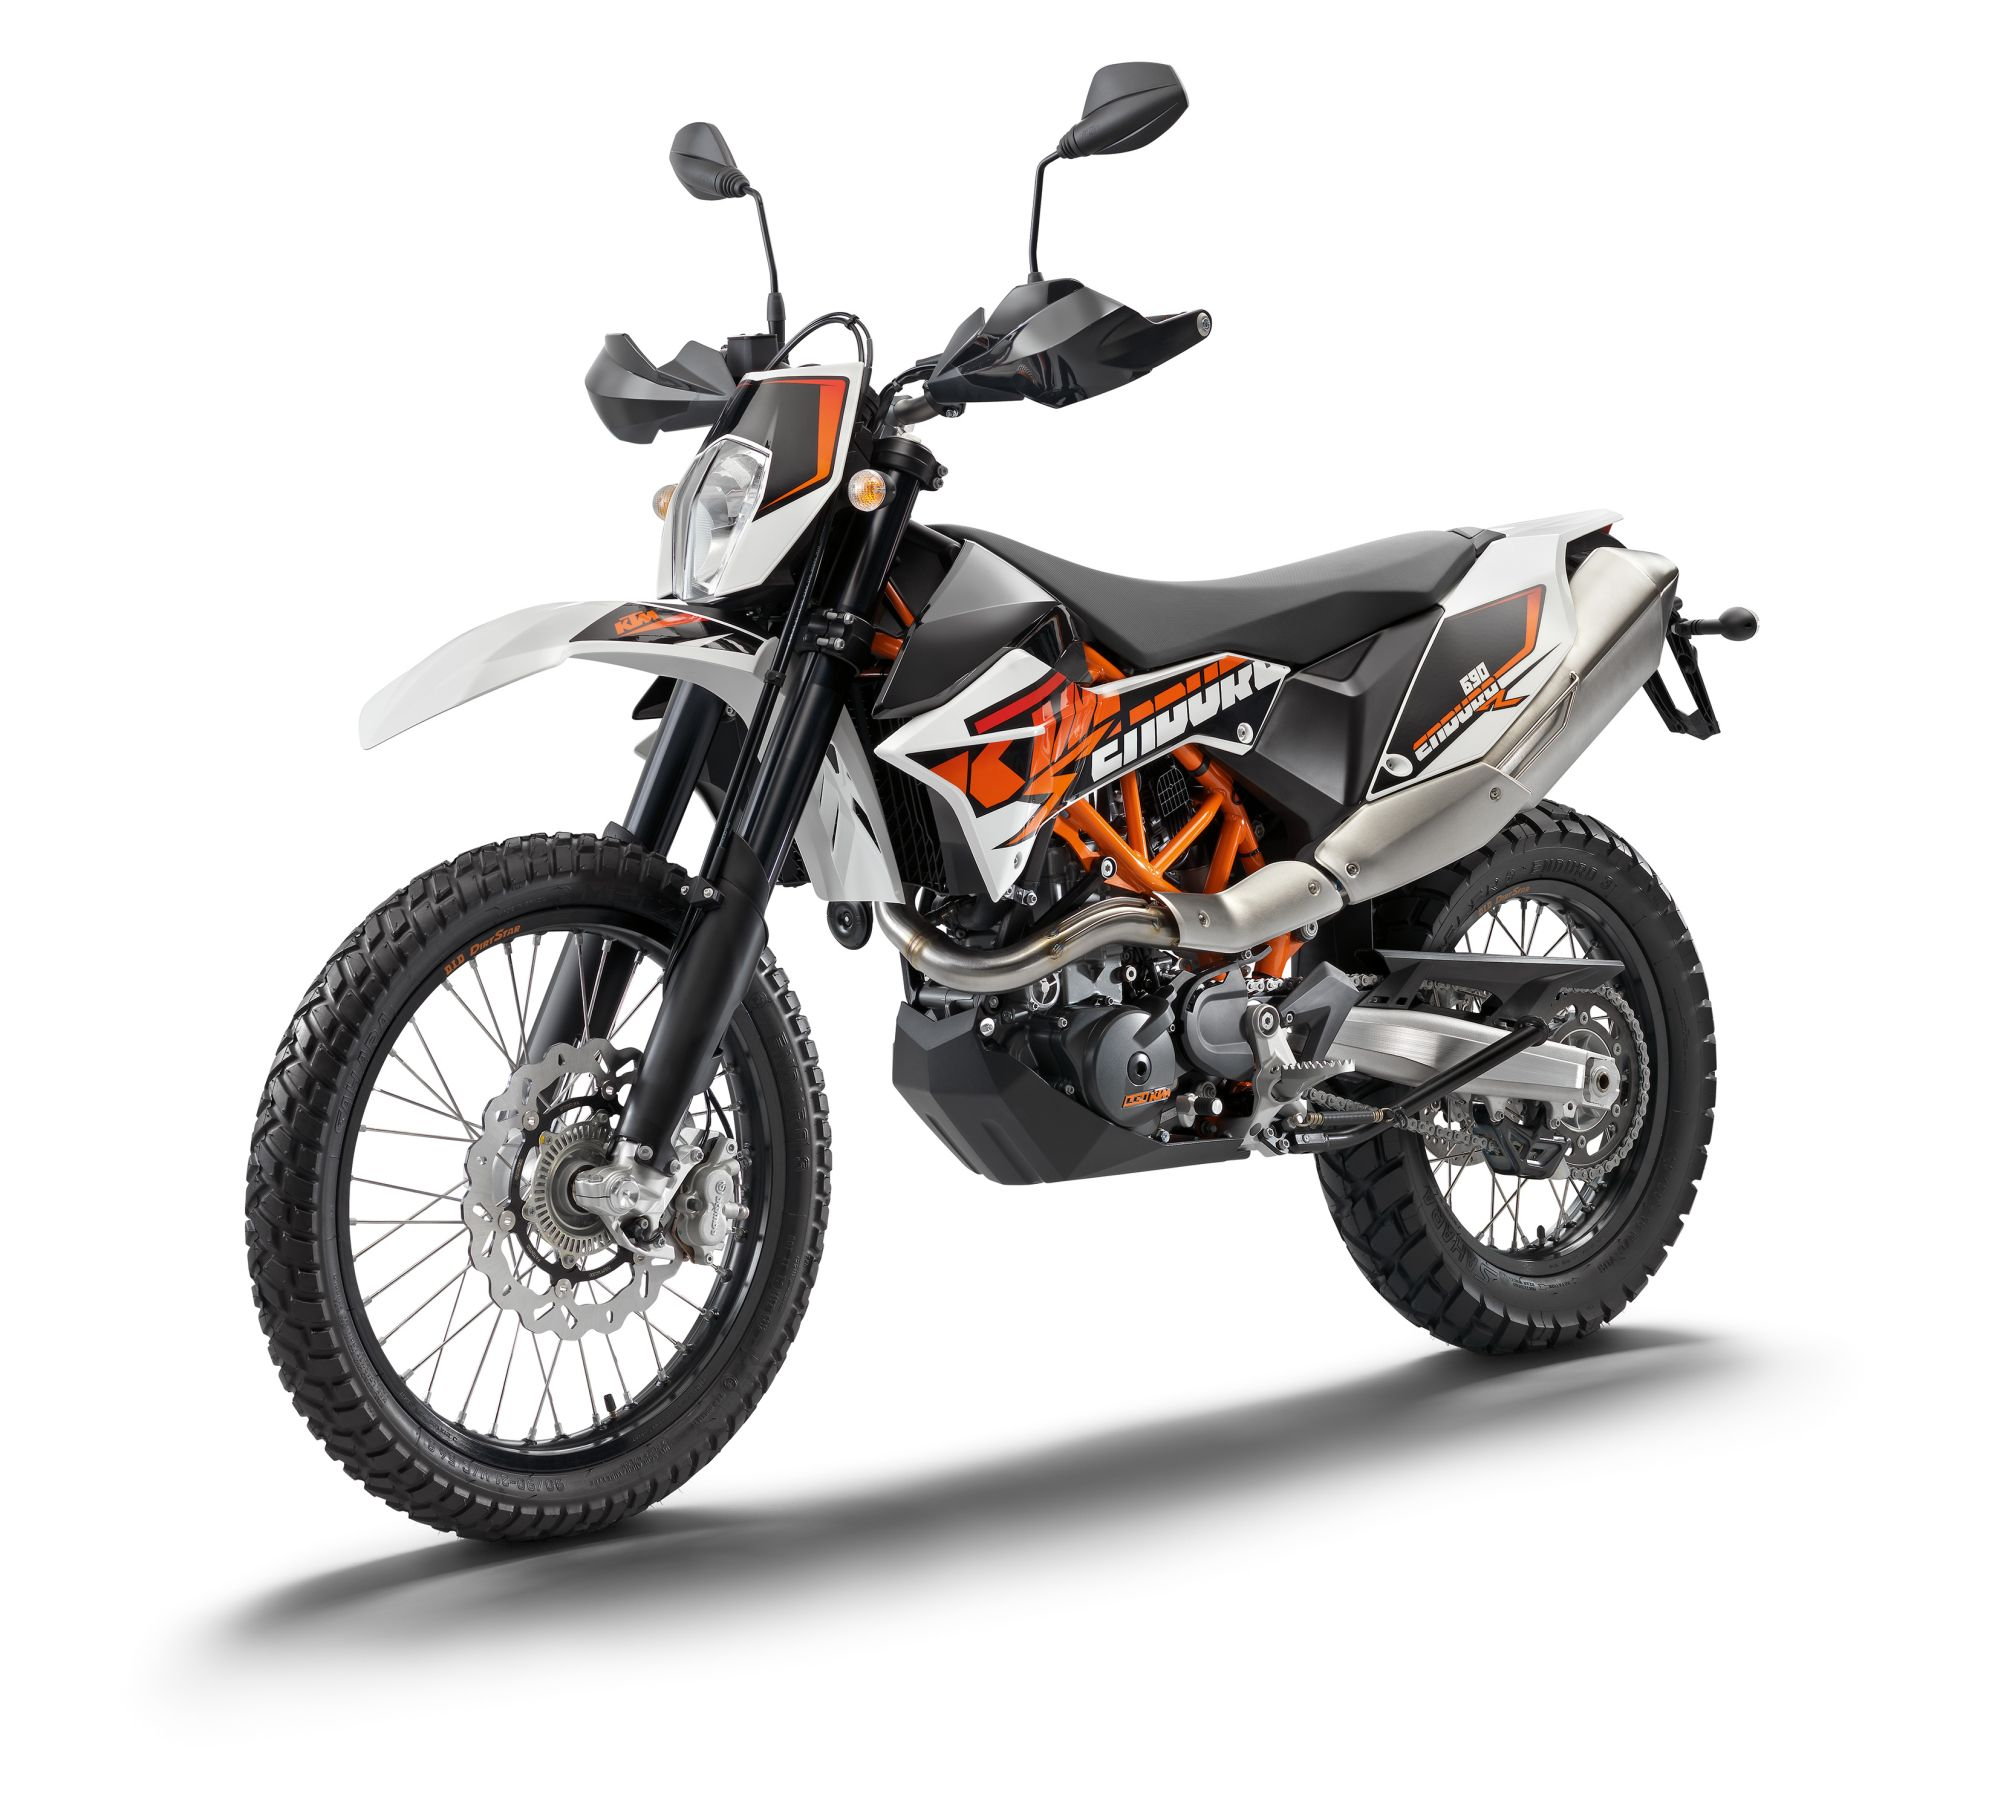 ktm 690 enduro r bilder und technische daten. Black Bedroom Furniture Sets. Home Design Ideas